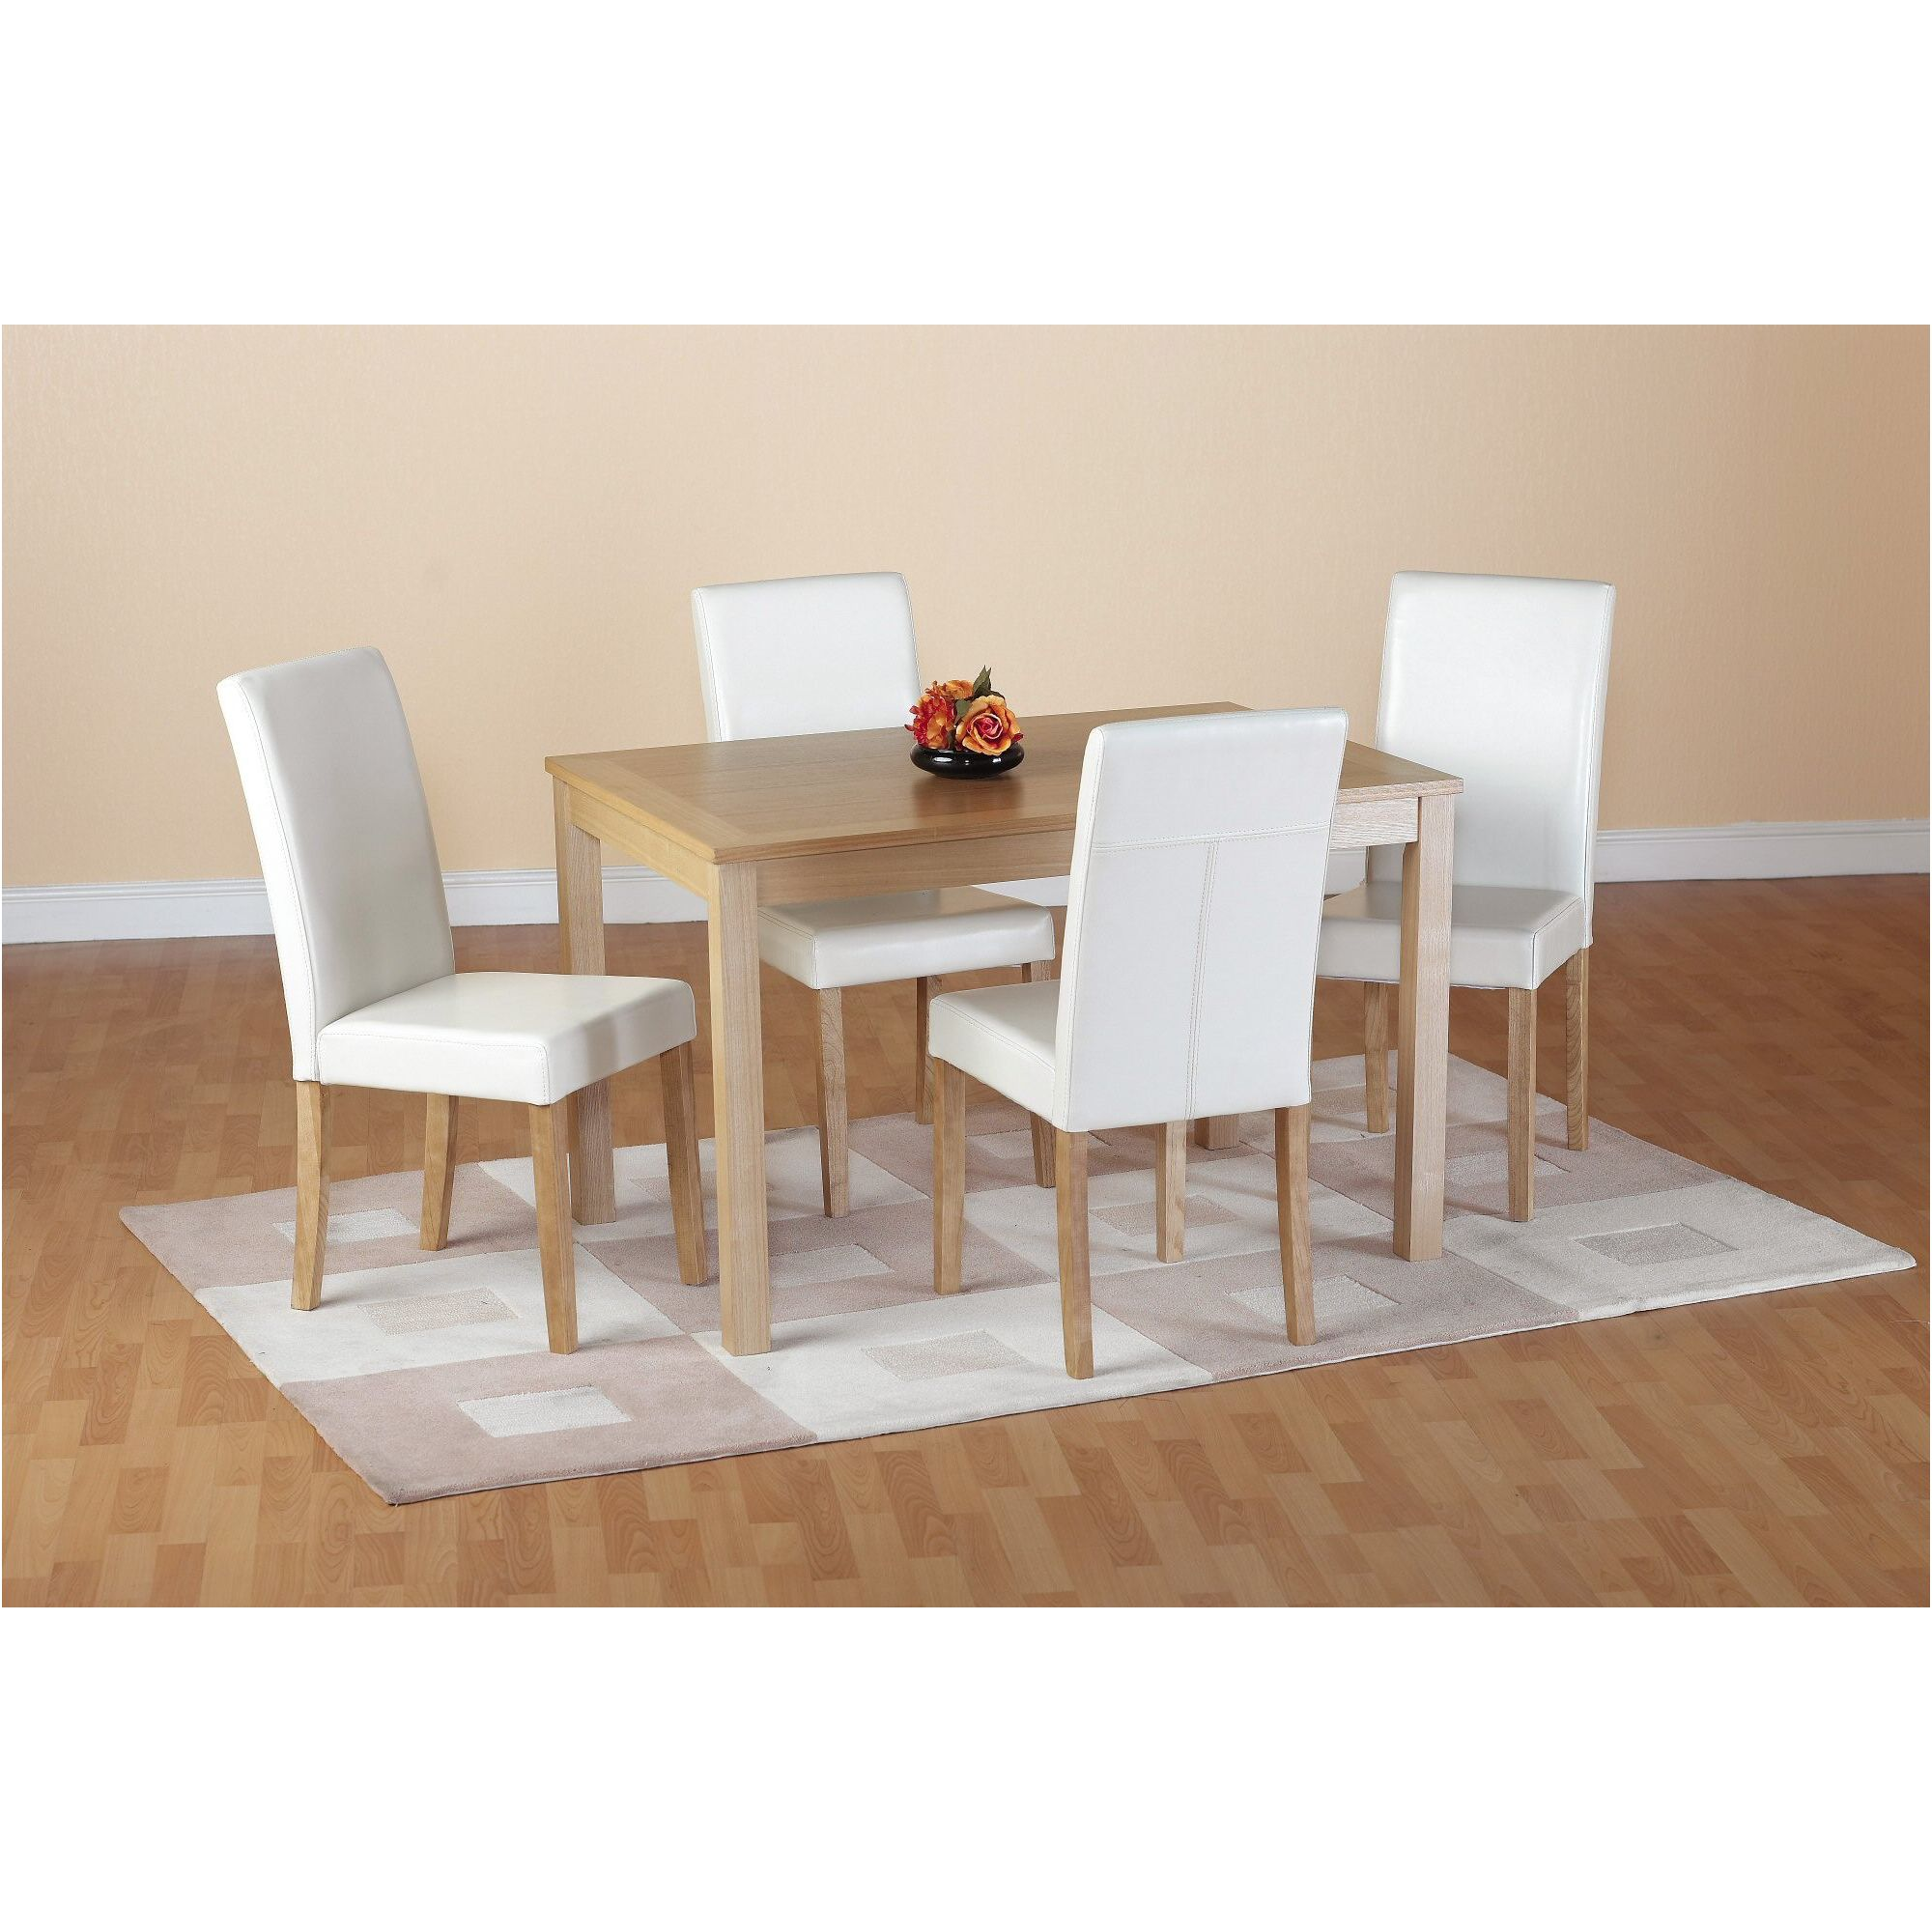 Home Essence Oakmere 5 Piece Dining Set - Cream at Tesco Direct